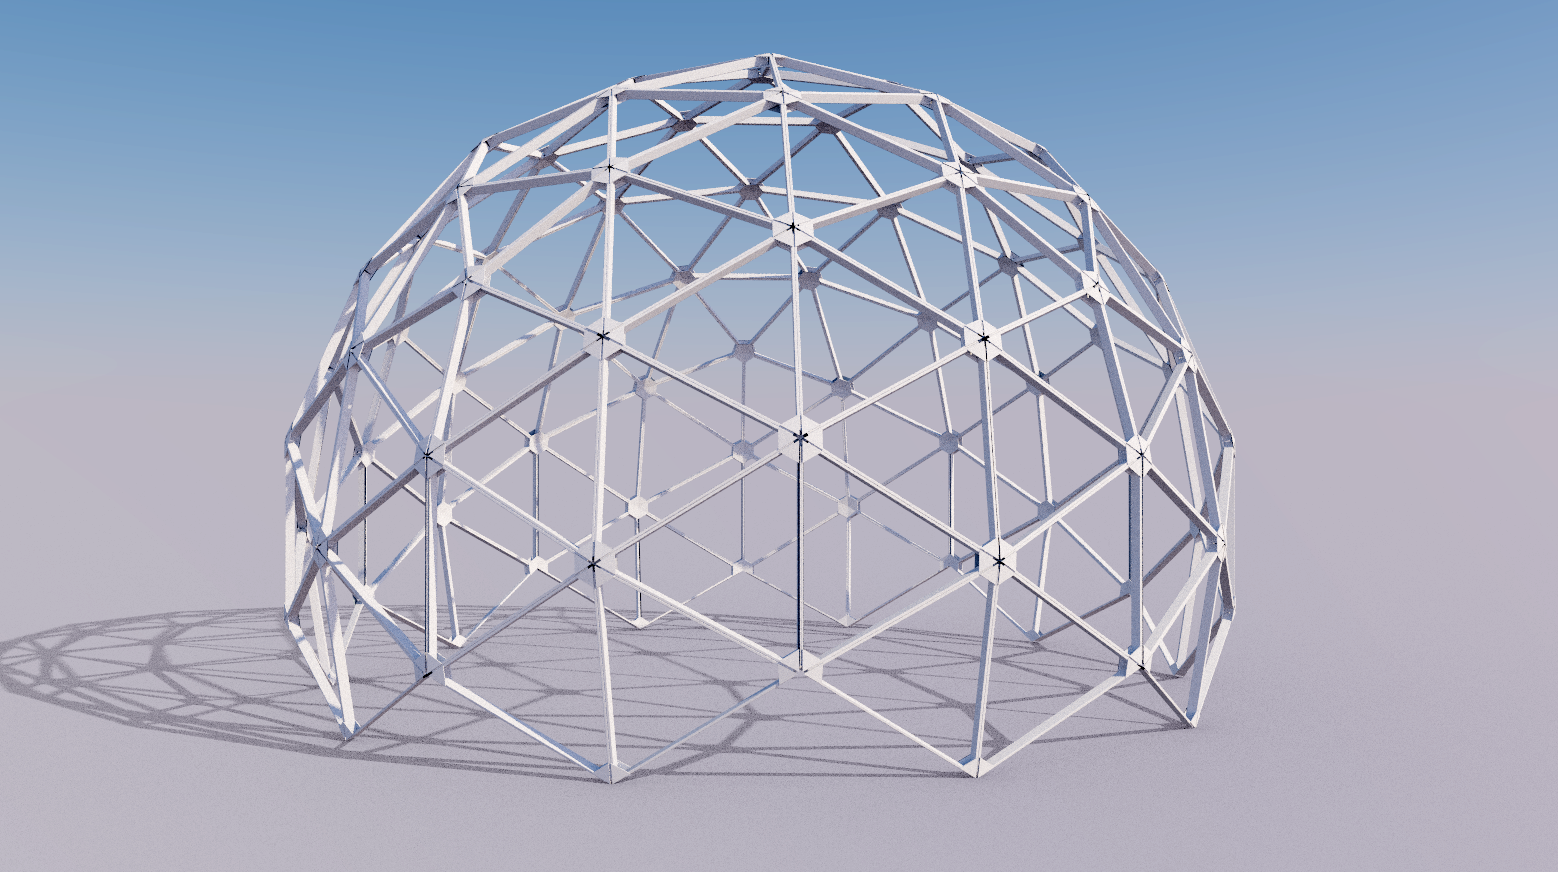 Sketchup Rendering Of A 4v Class Ii Dome For A Greenhouse